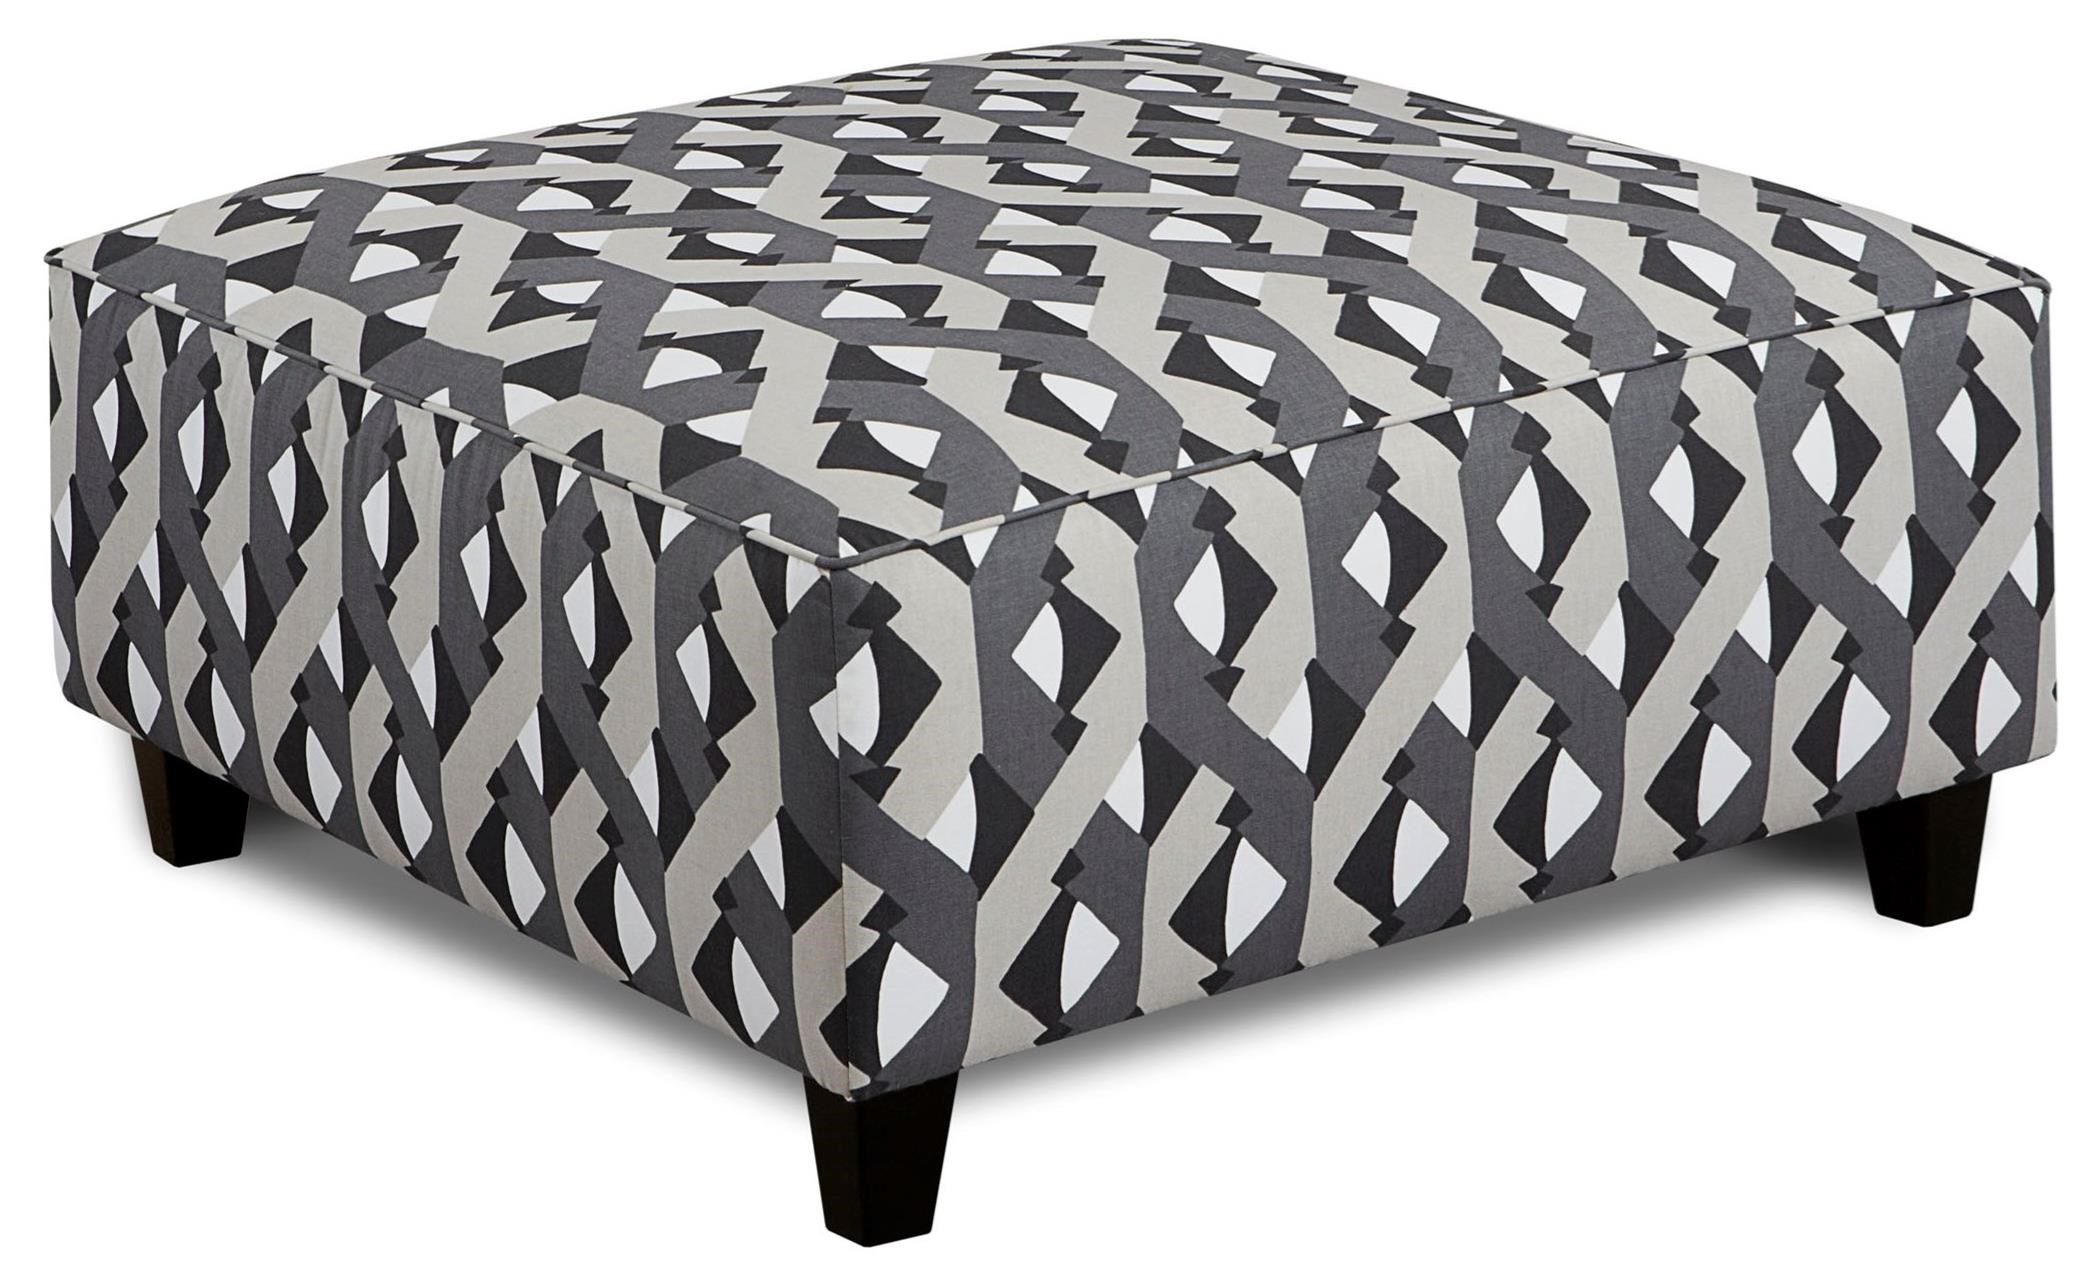 Fusion Furniture 109 Square Ottoman - Item Number: 109Dover Street Graphite